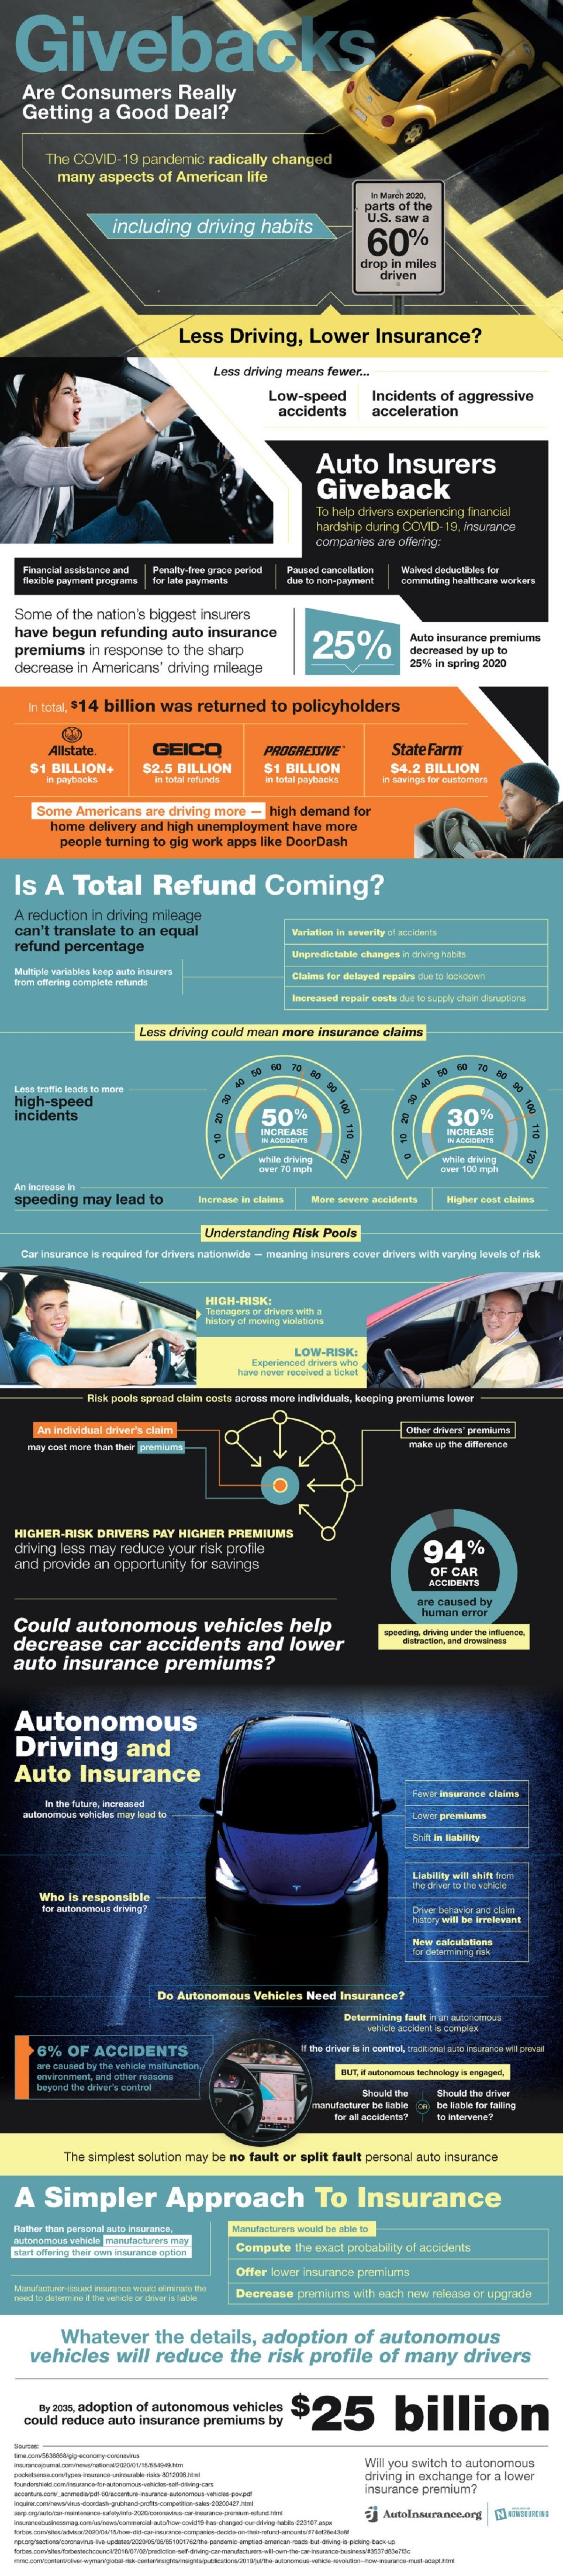 auto-insurance-givebacks-infographic